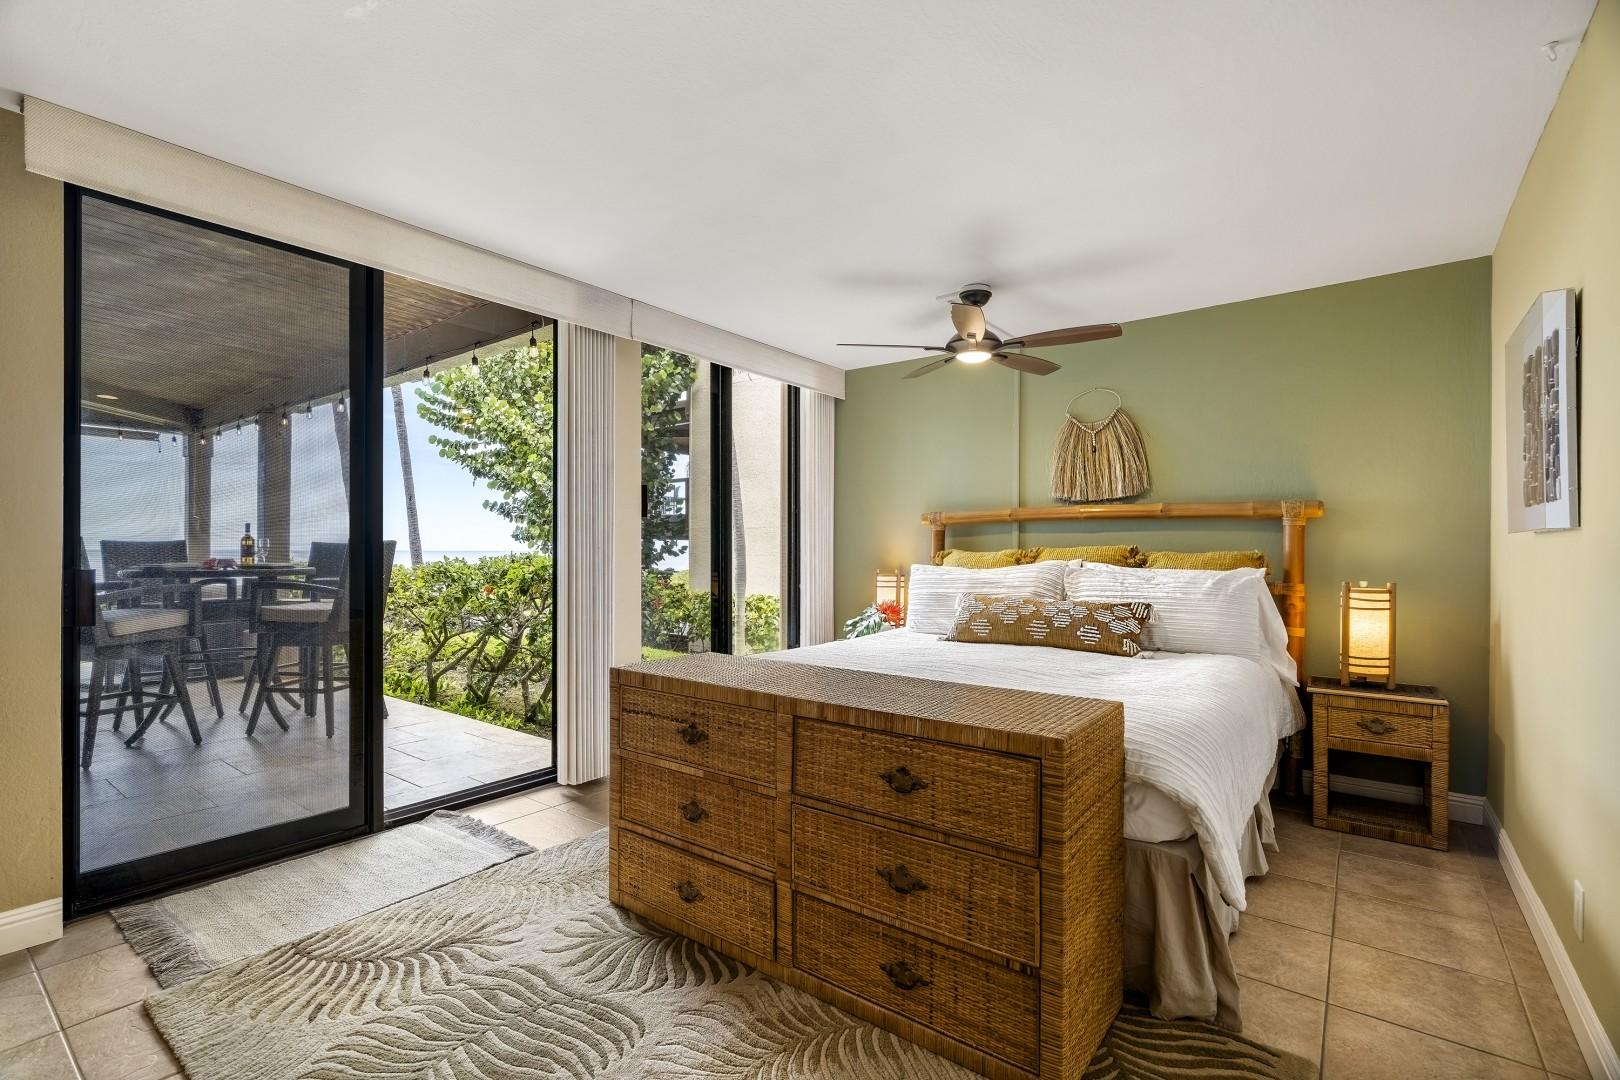 Primary bedroom with King bed, ocean views, Lanai access and shoji doors